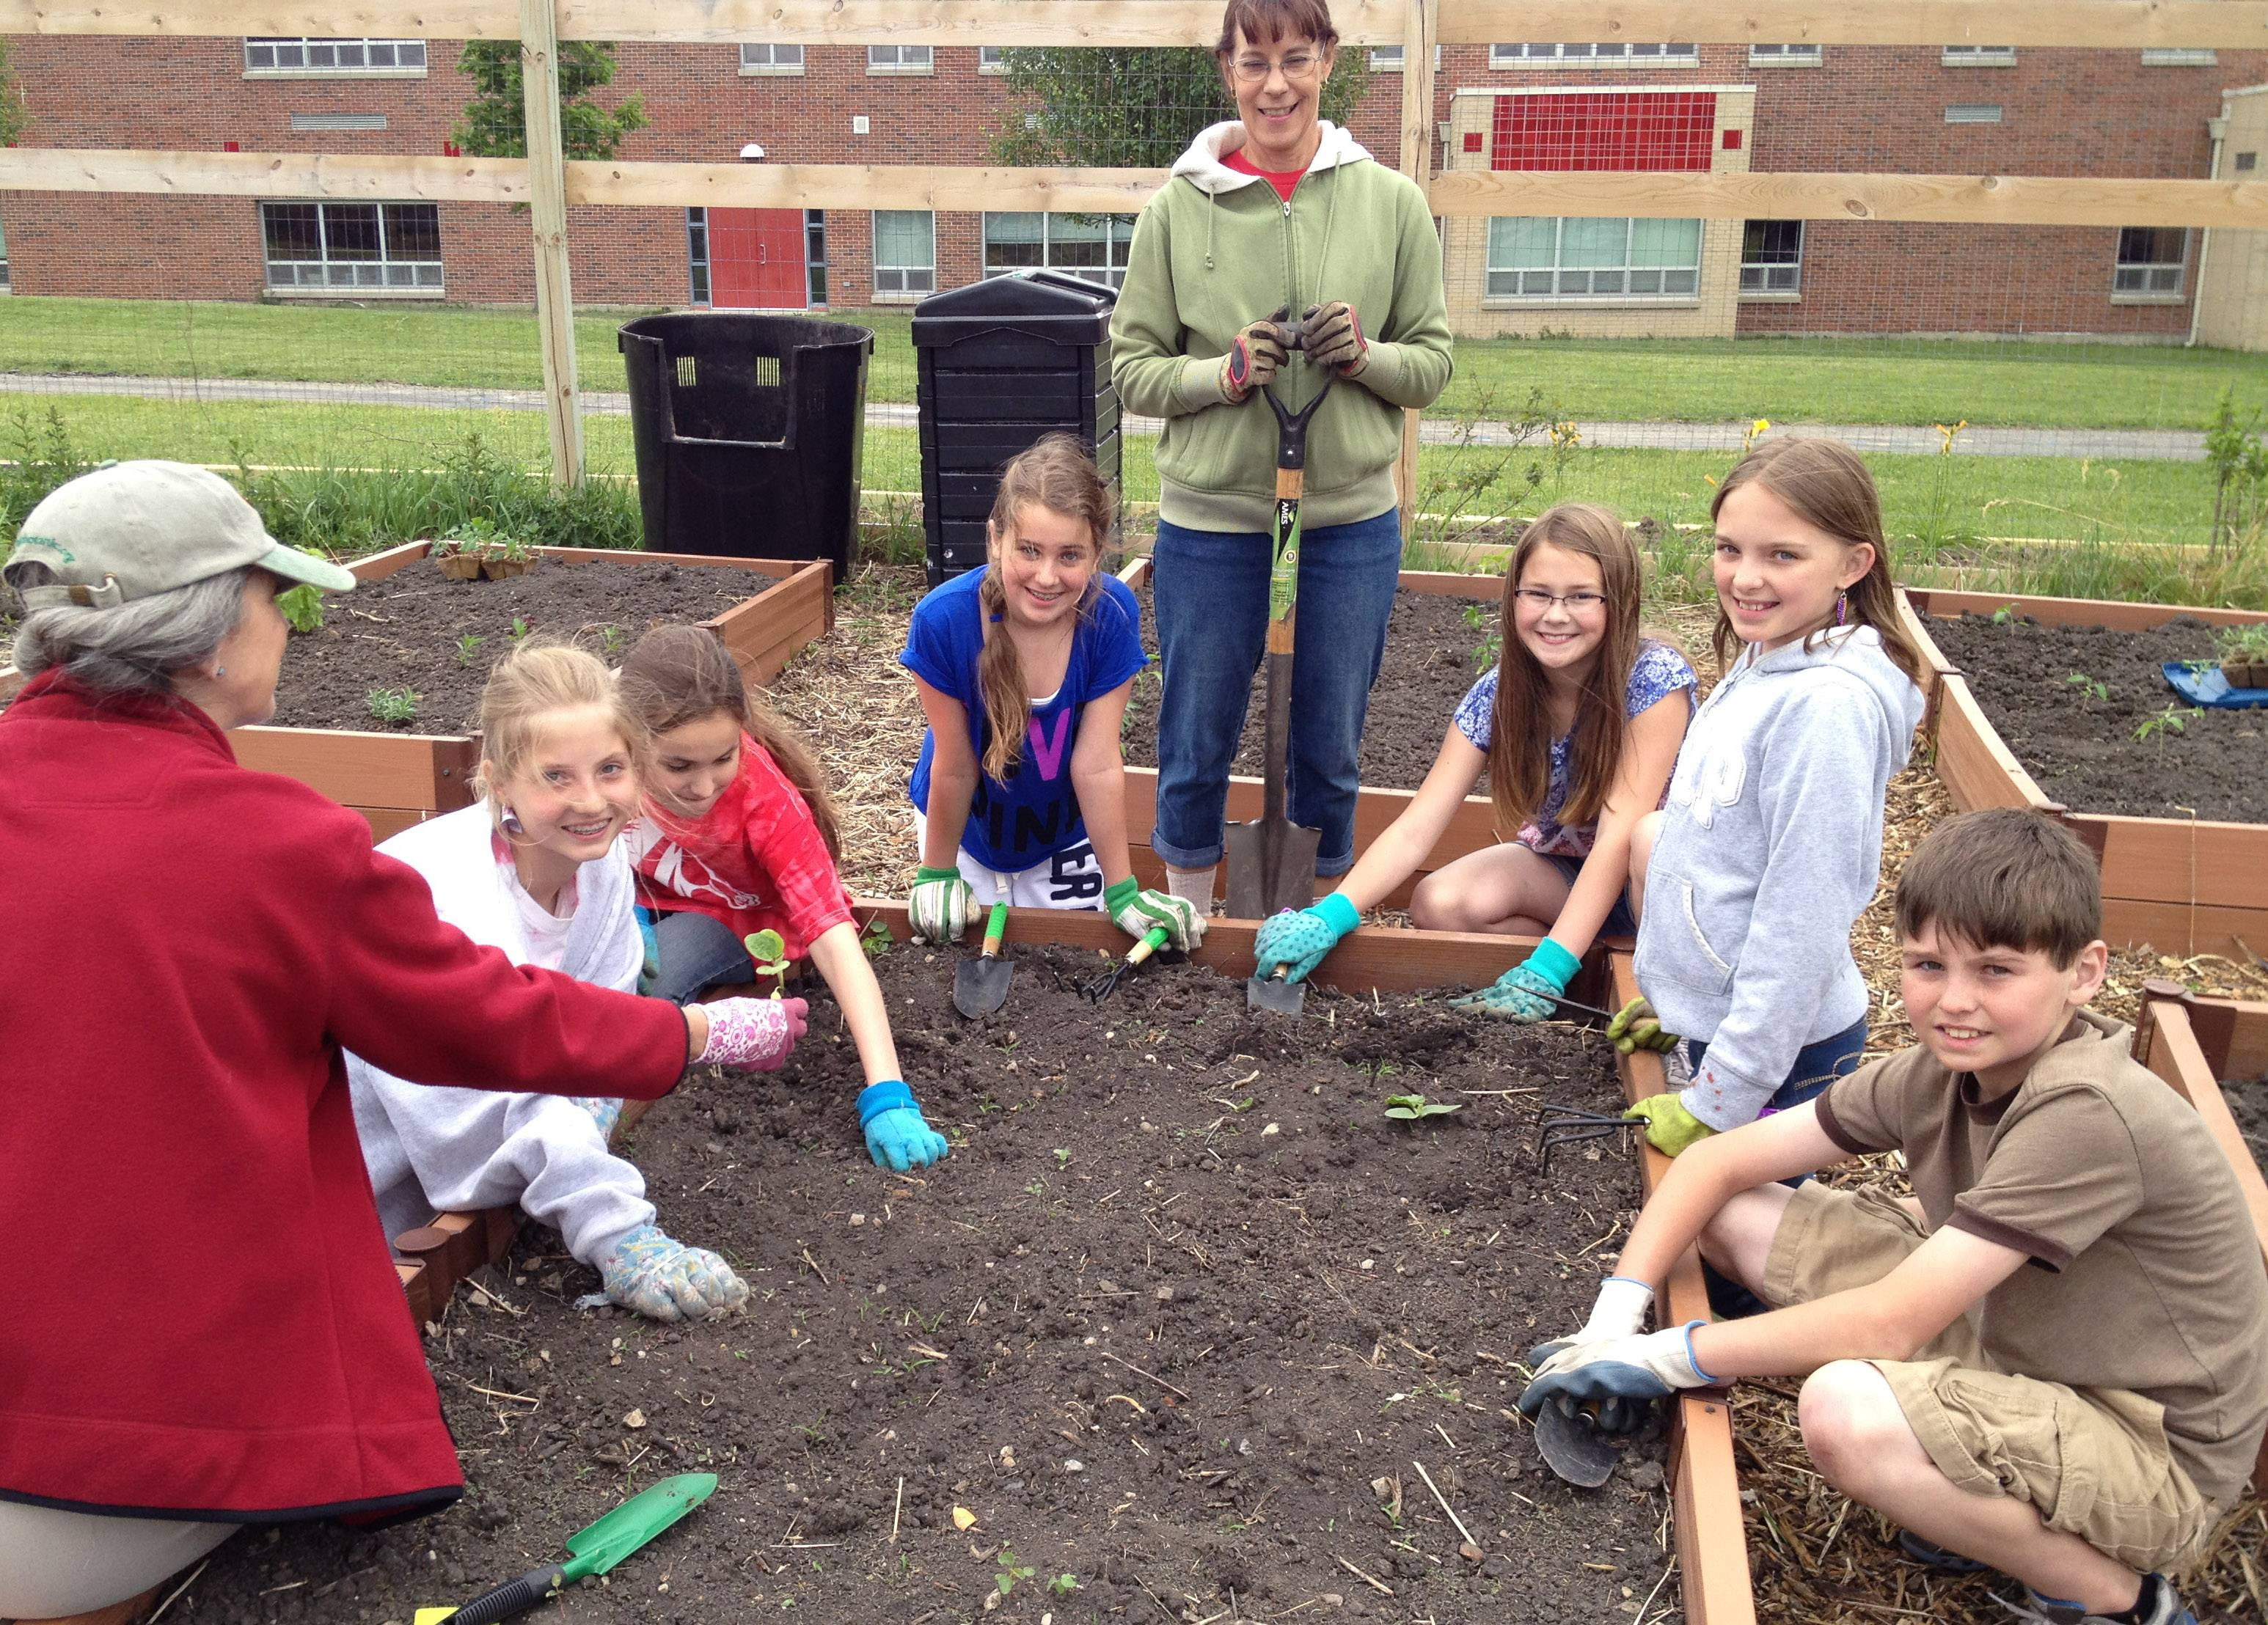 Millburn School students work in the community garden.